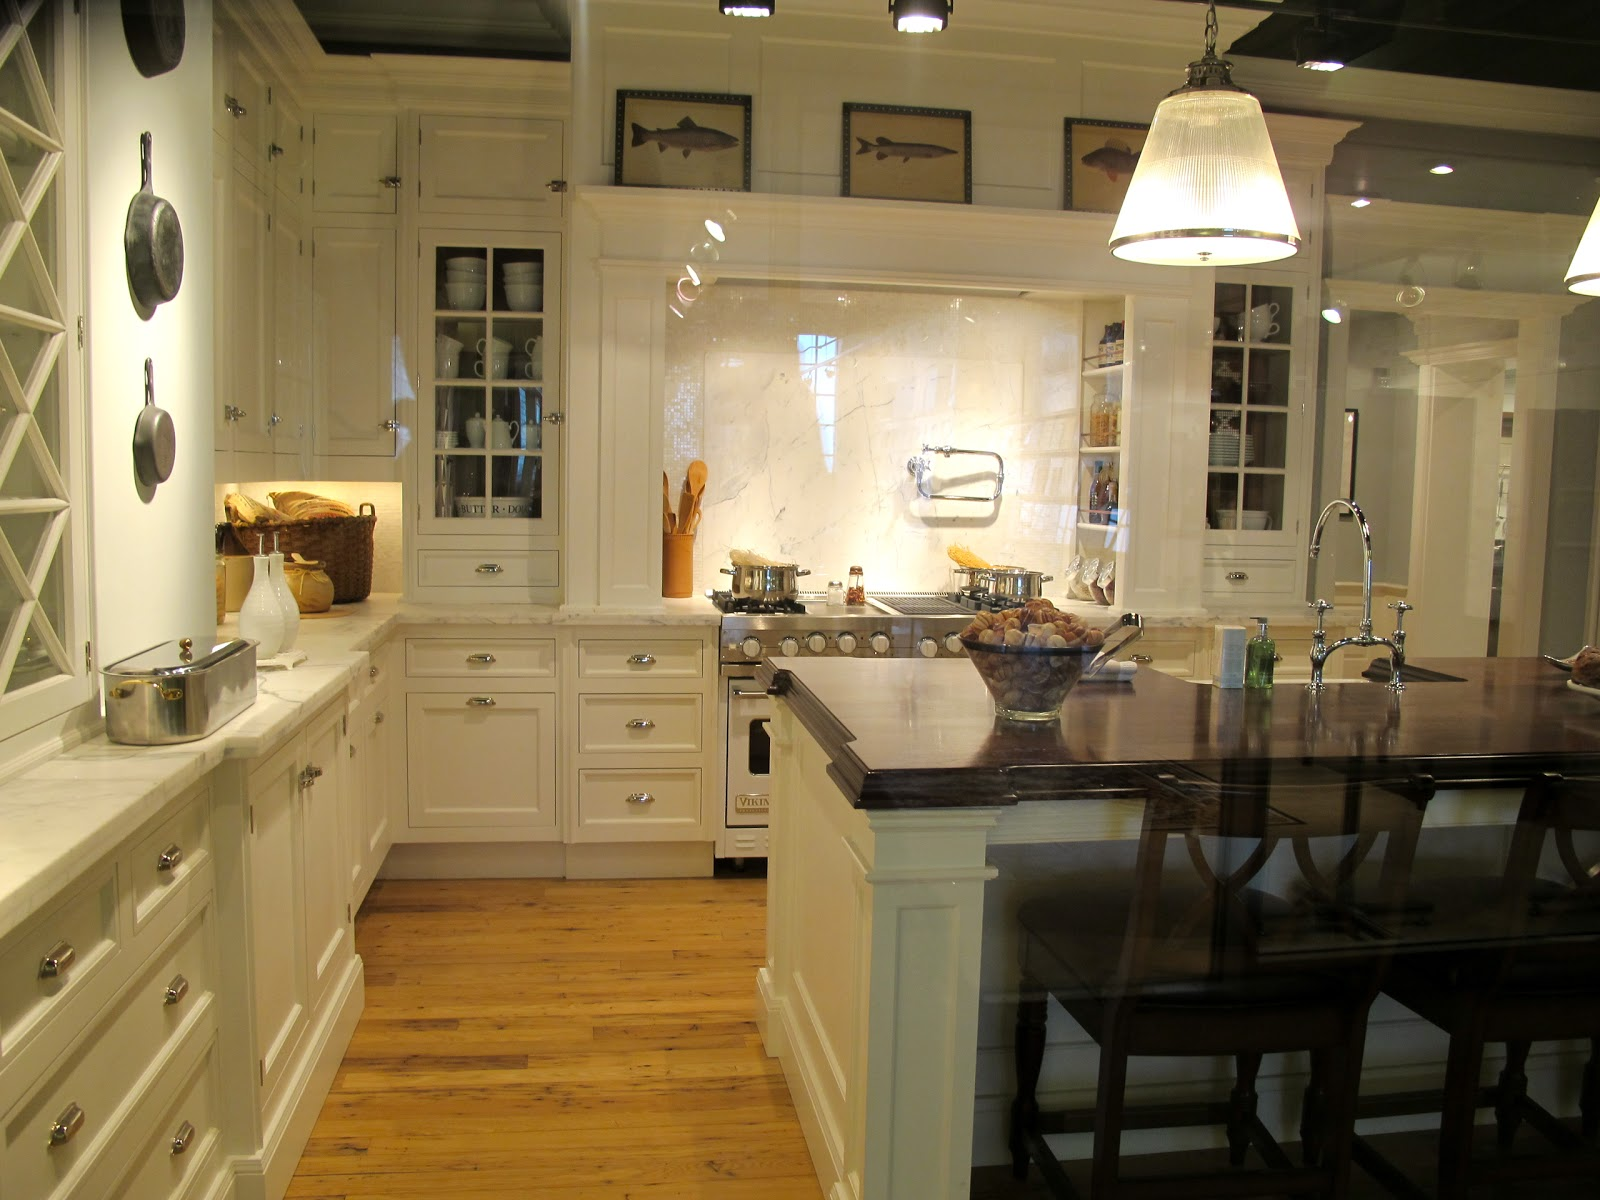 white kitchen cabinets good idea photo - 6